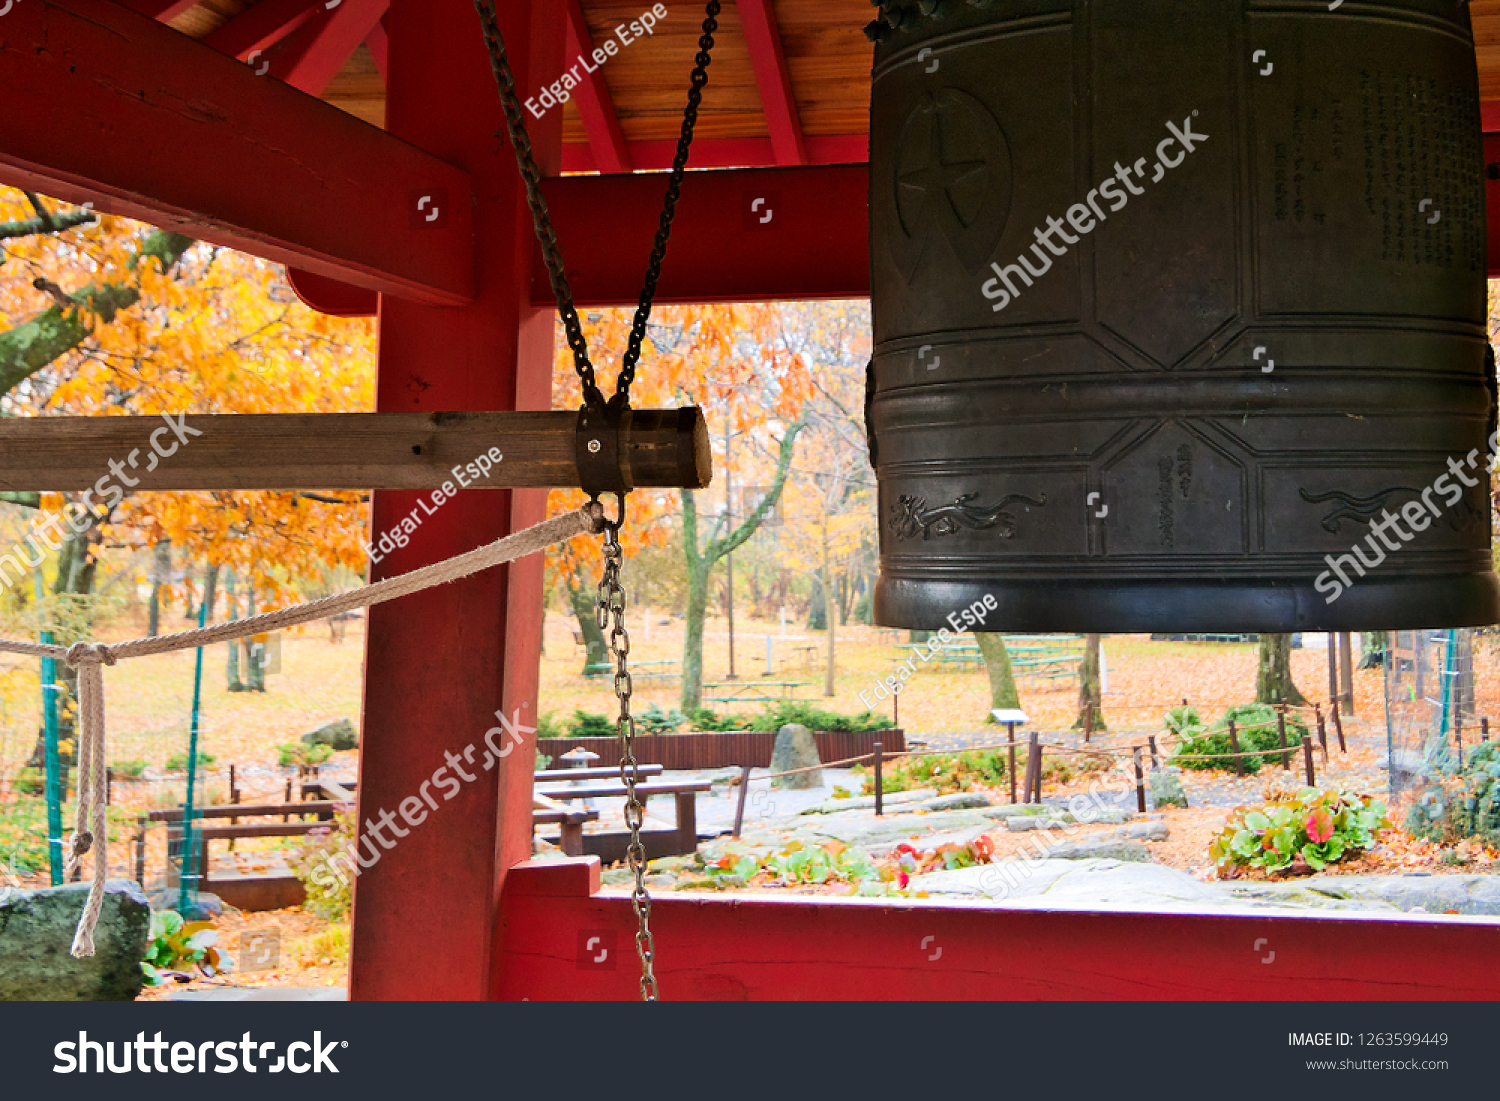 stock-photo-duluth-mn-october-peace-bell